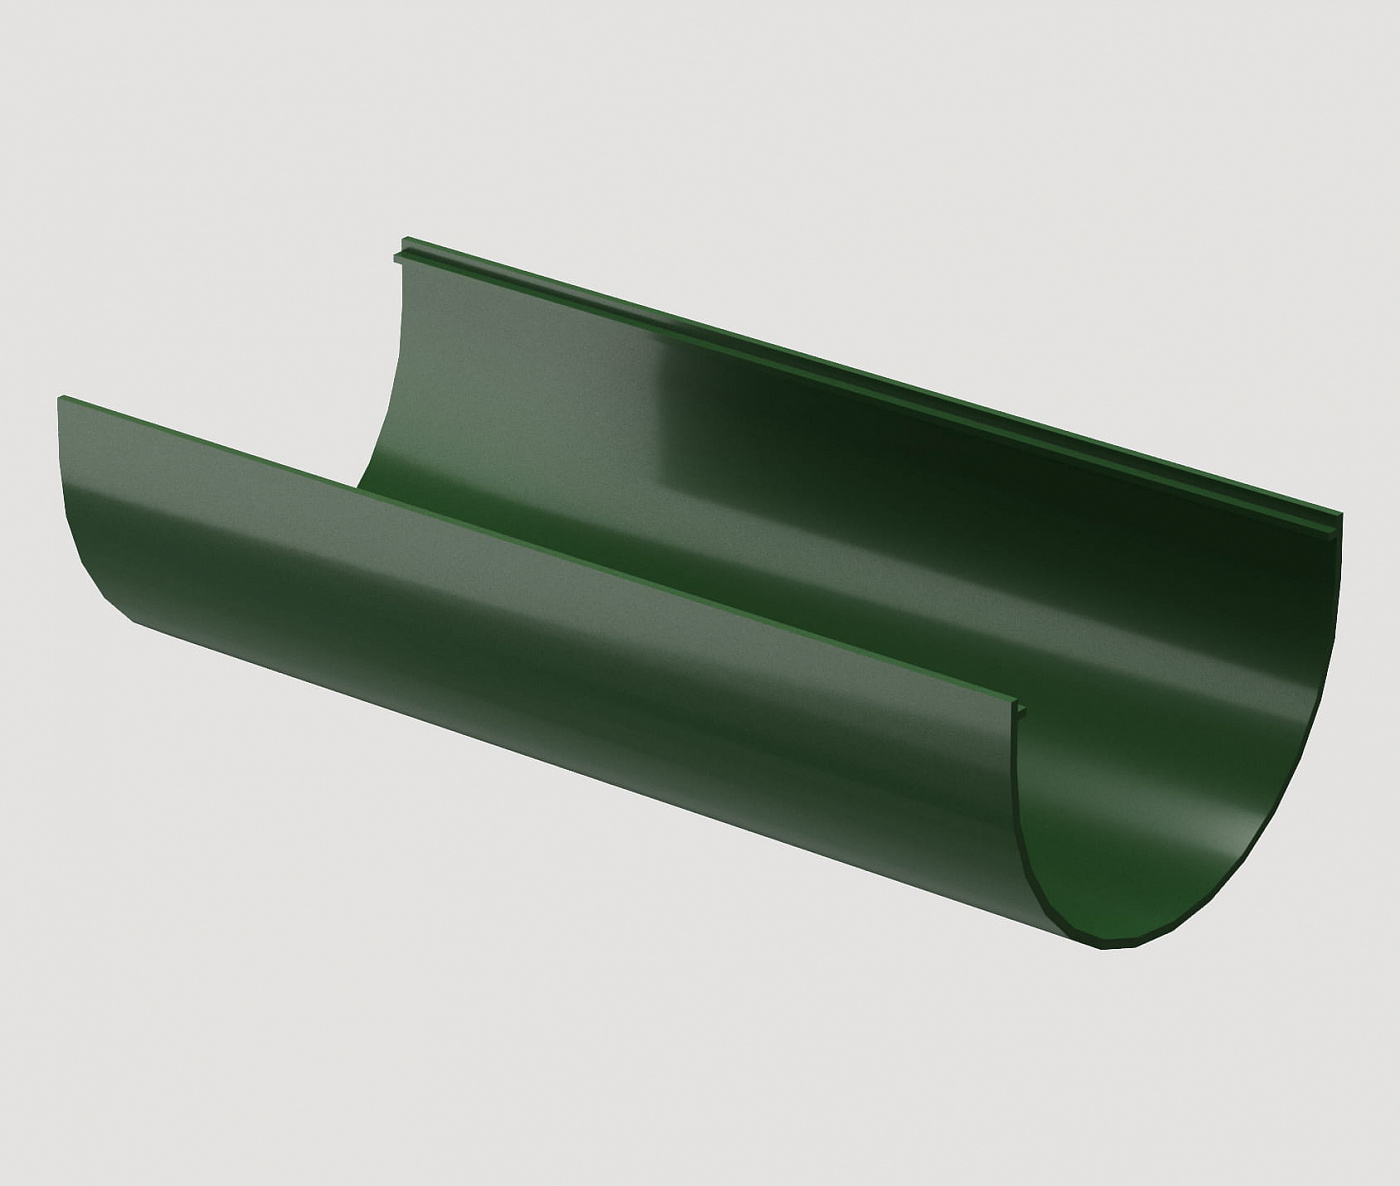 Водостоки - STANDARD SERIES Green RAL 6005 - Elements of the drainage system - Gutter 2m